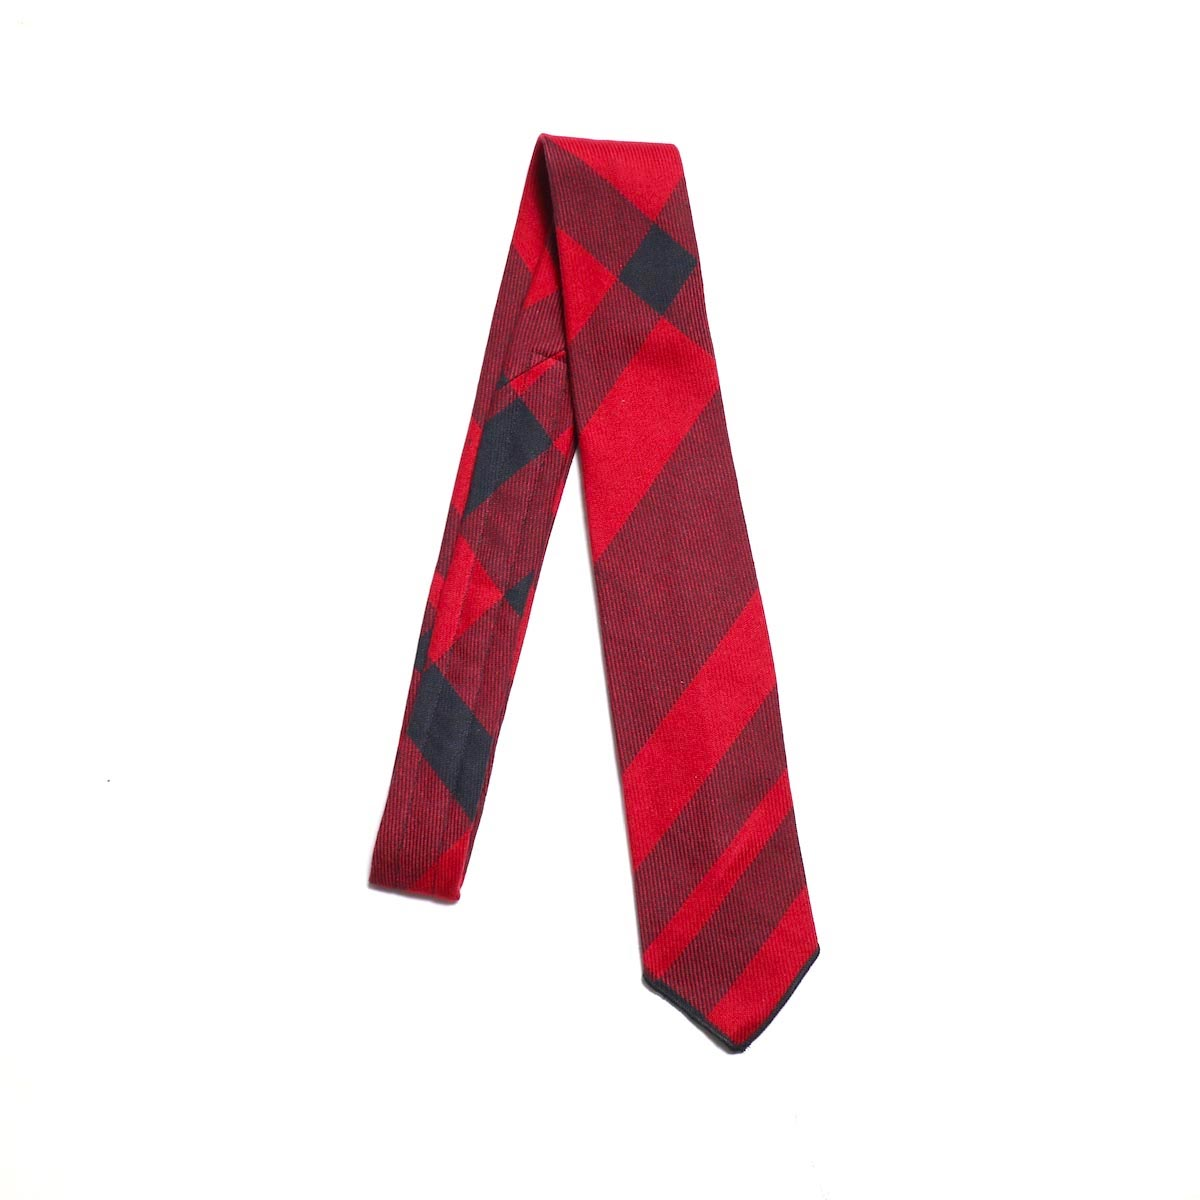 ENGINEERED GARMENTS / Neck Tie Big Plaid  -RED/BLACK